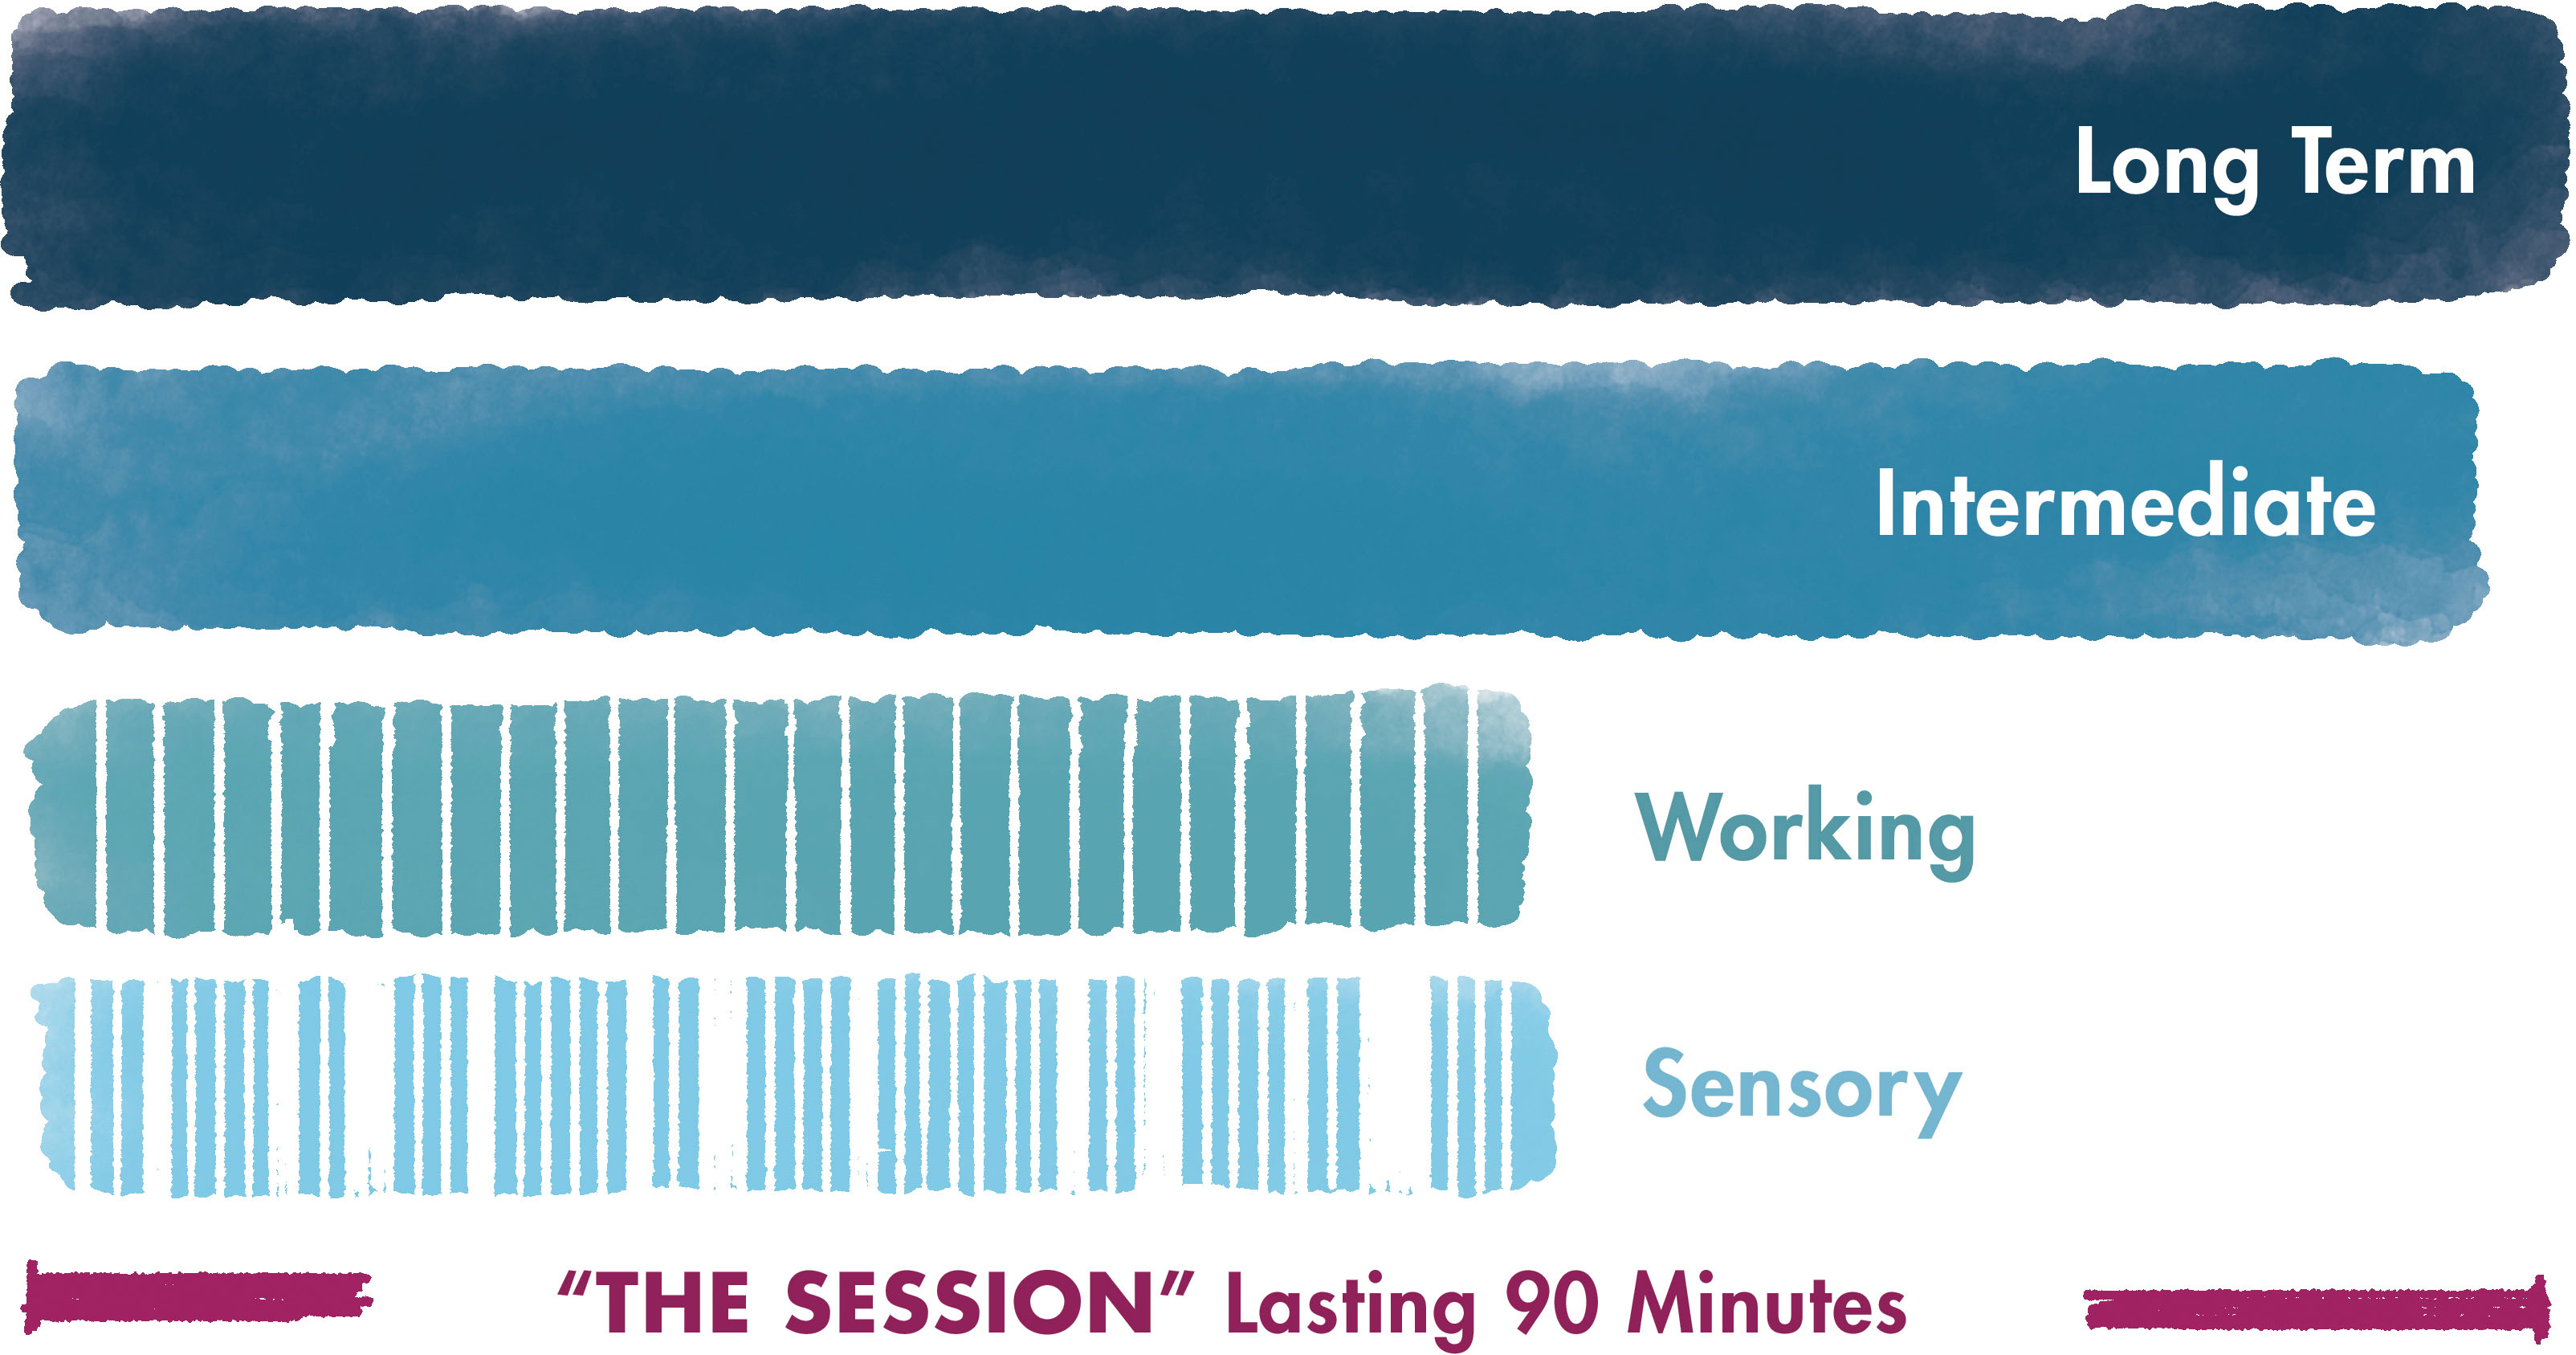 A chart showing how the different types of memory work over a 90-minute meeting